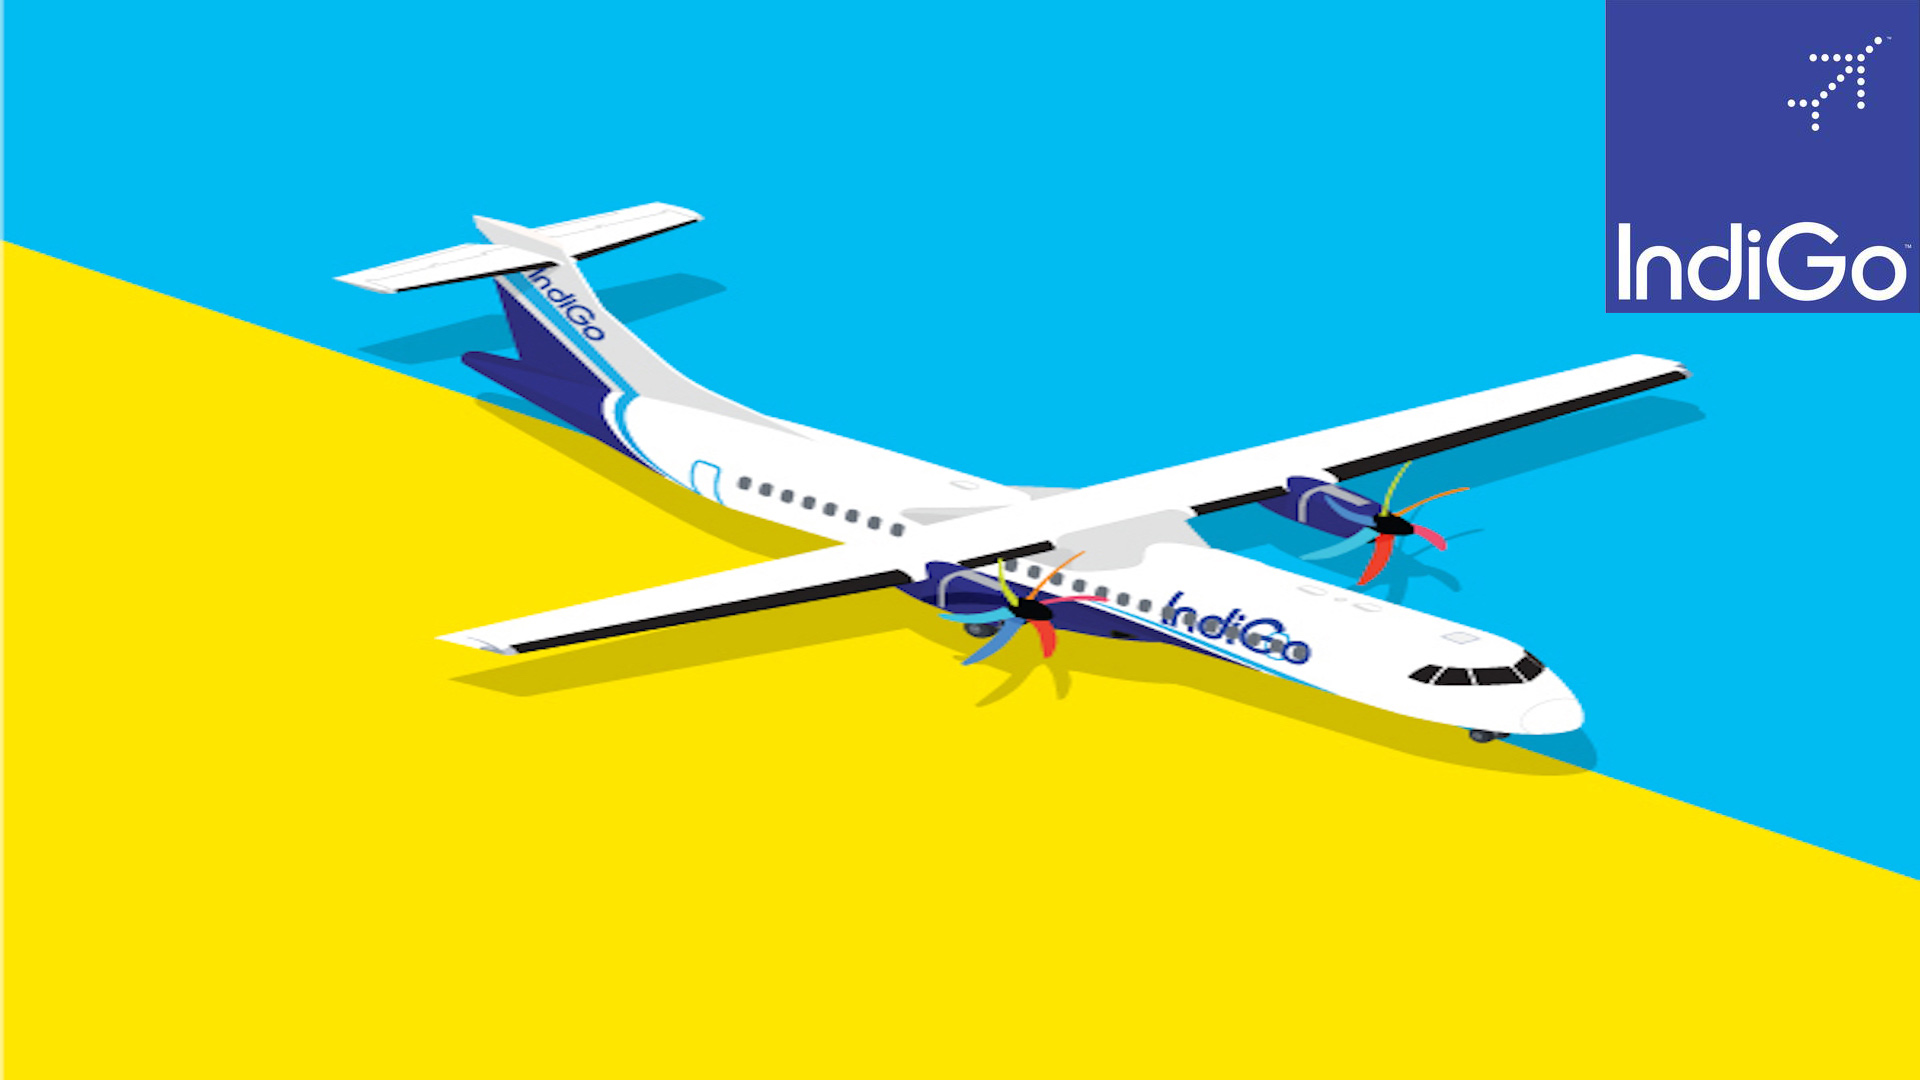 IndiGo is introducing new ATR flights on its existing network – Campaigns of the World